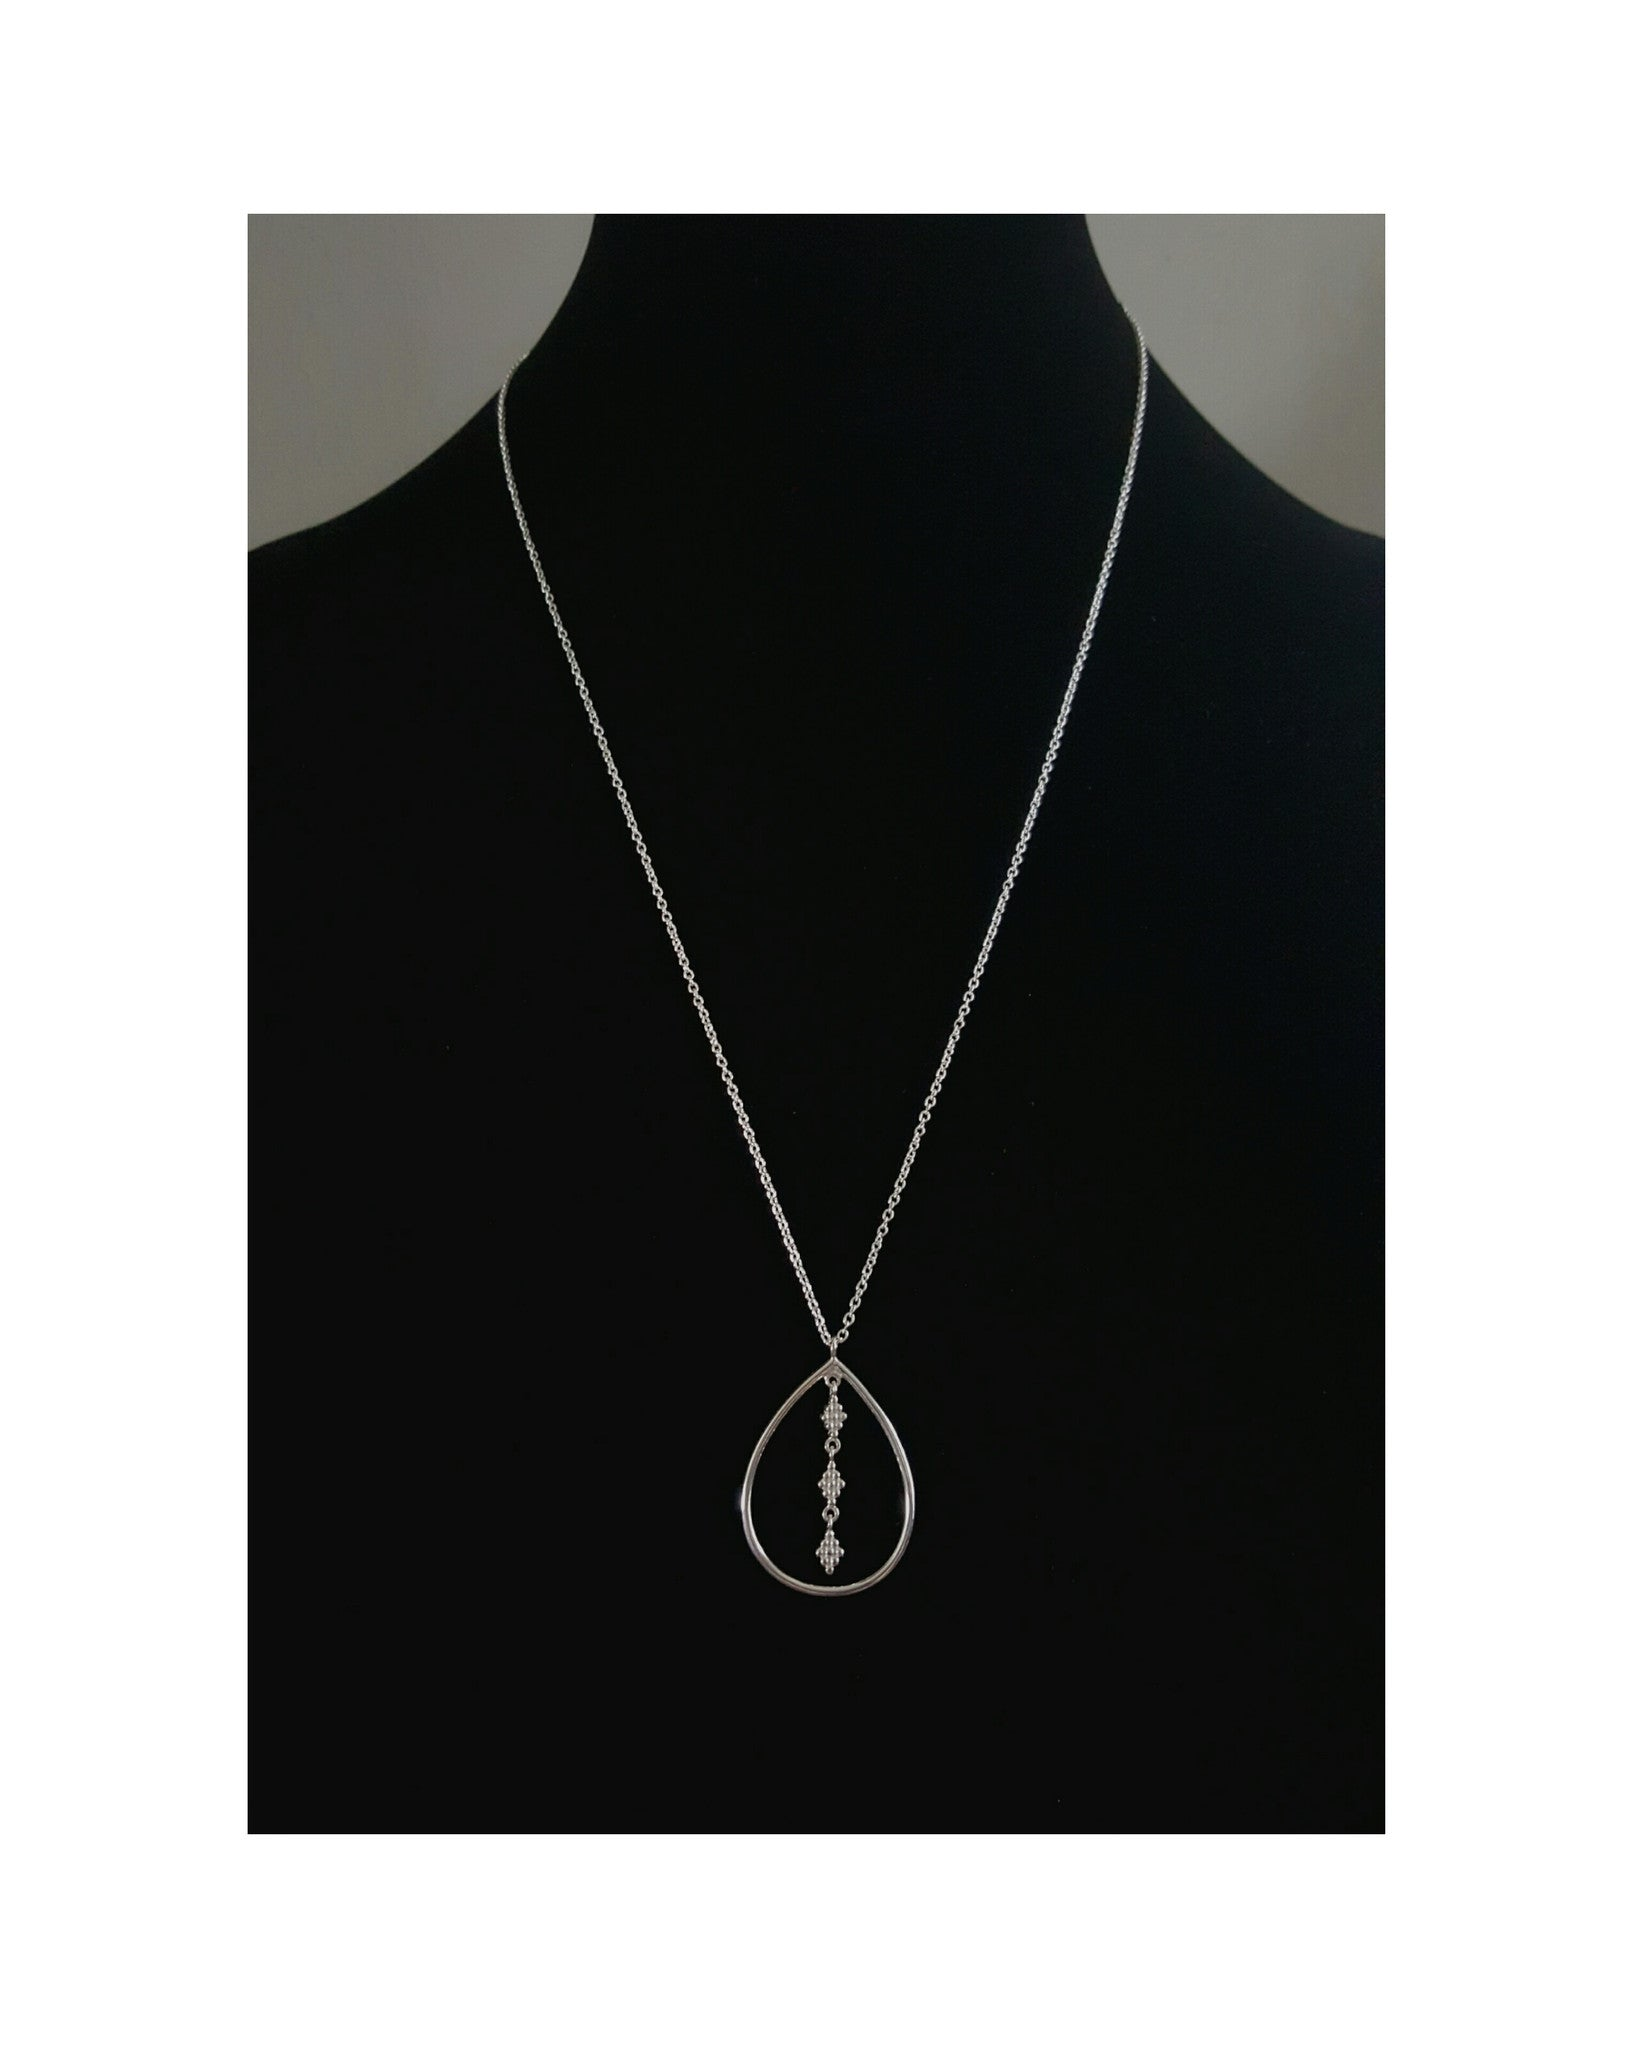 'Tabli' Pendant Chain (1 LEFT IN STOCK)